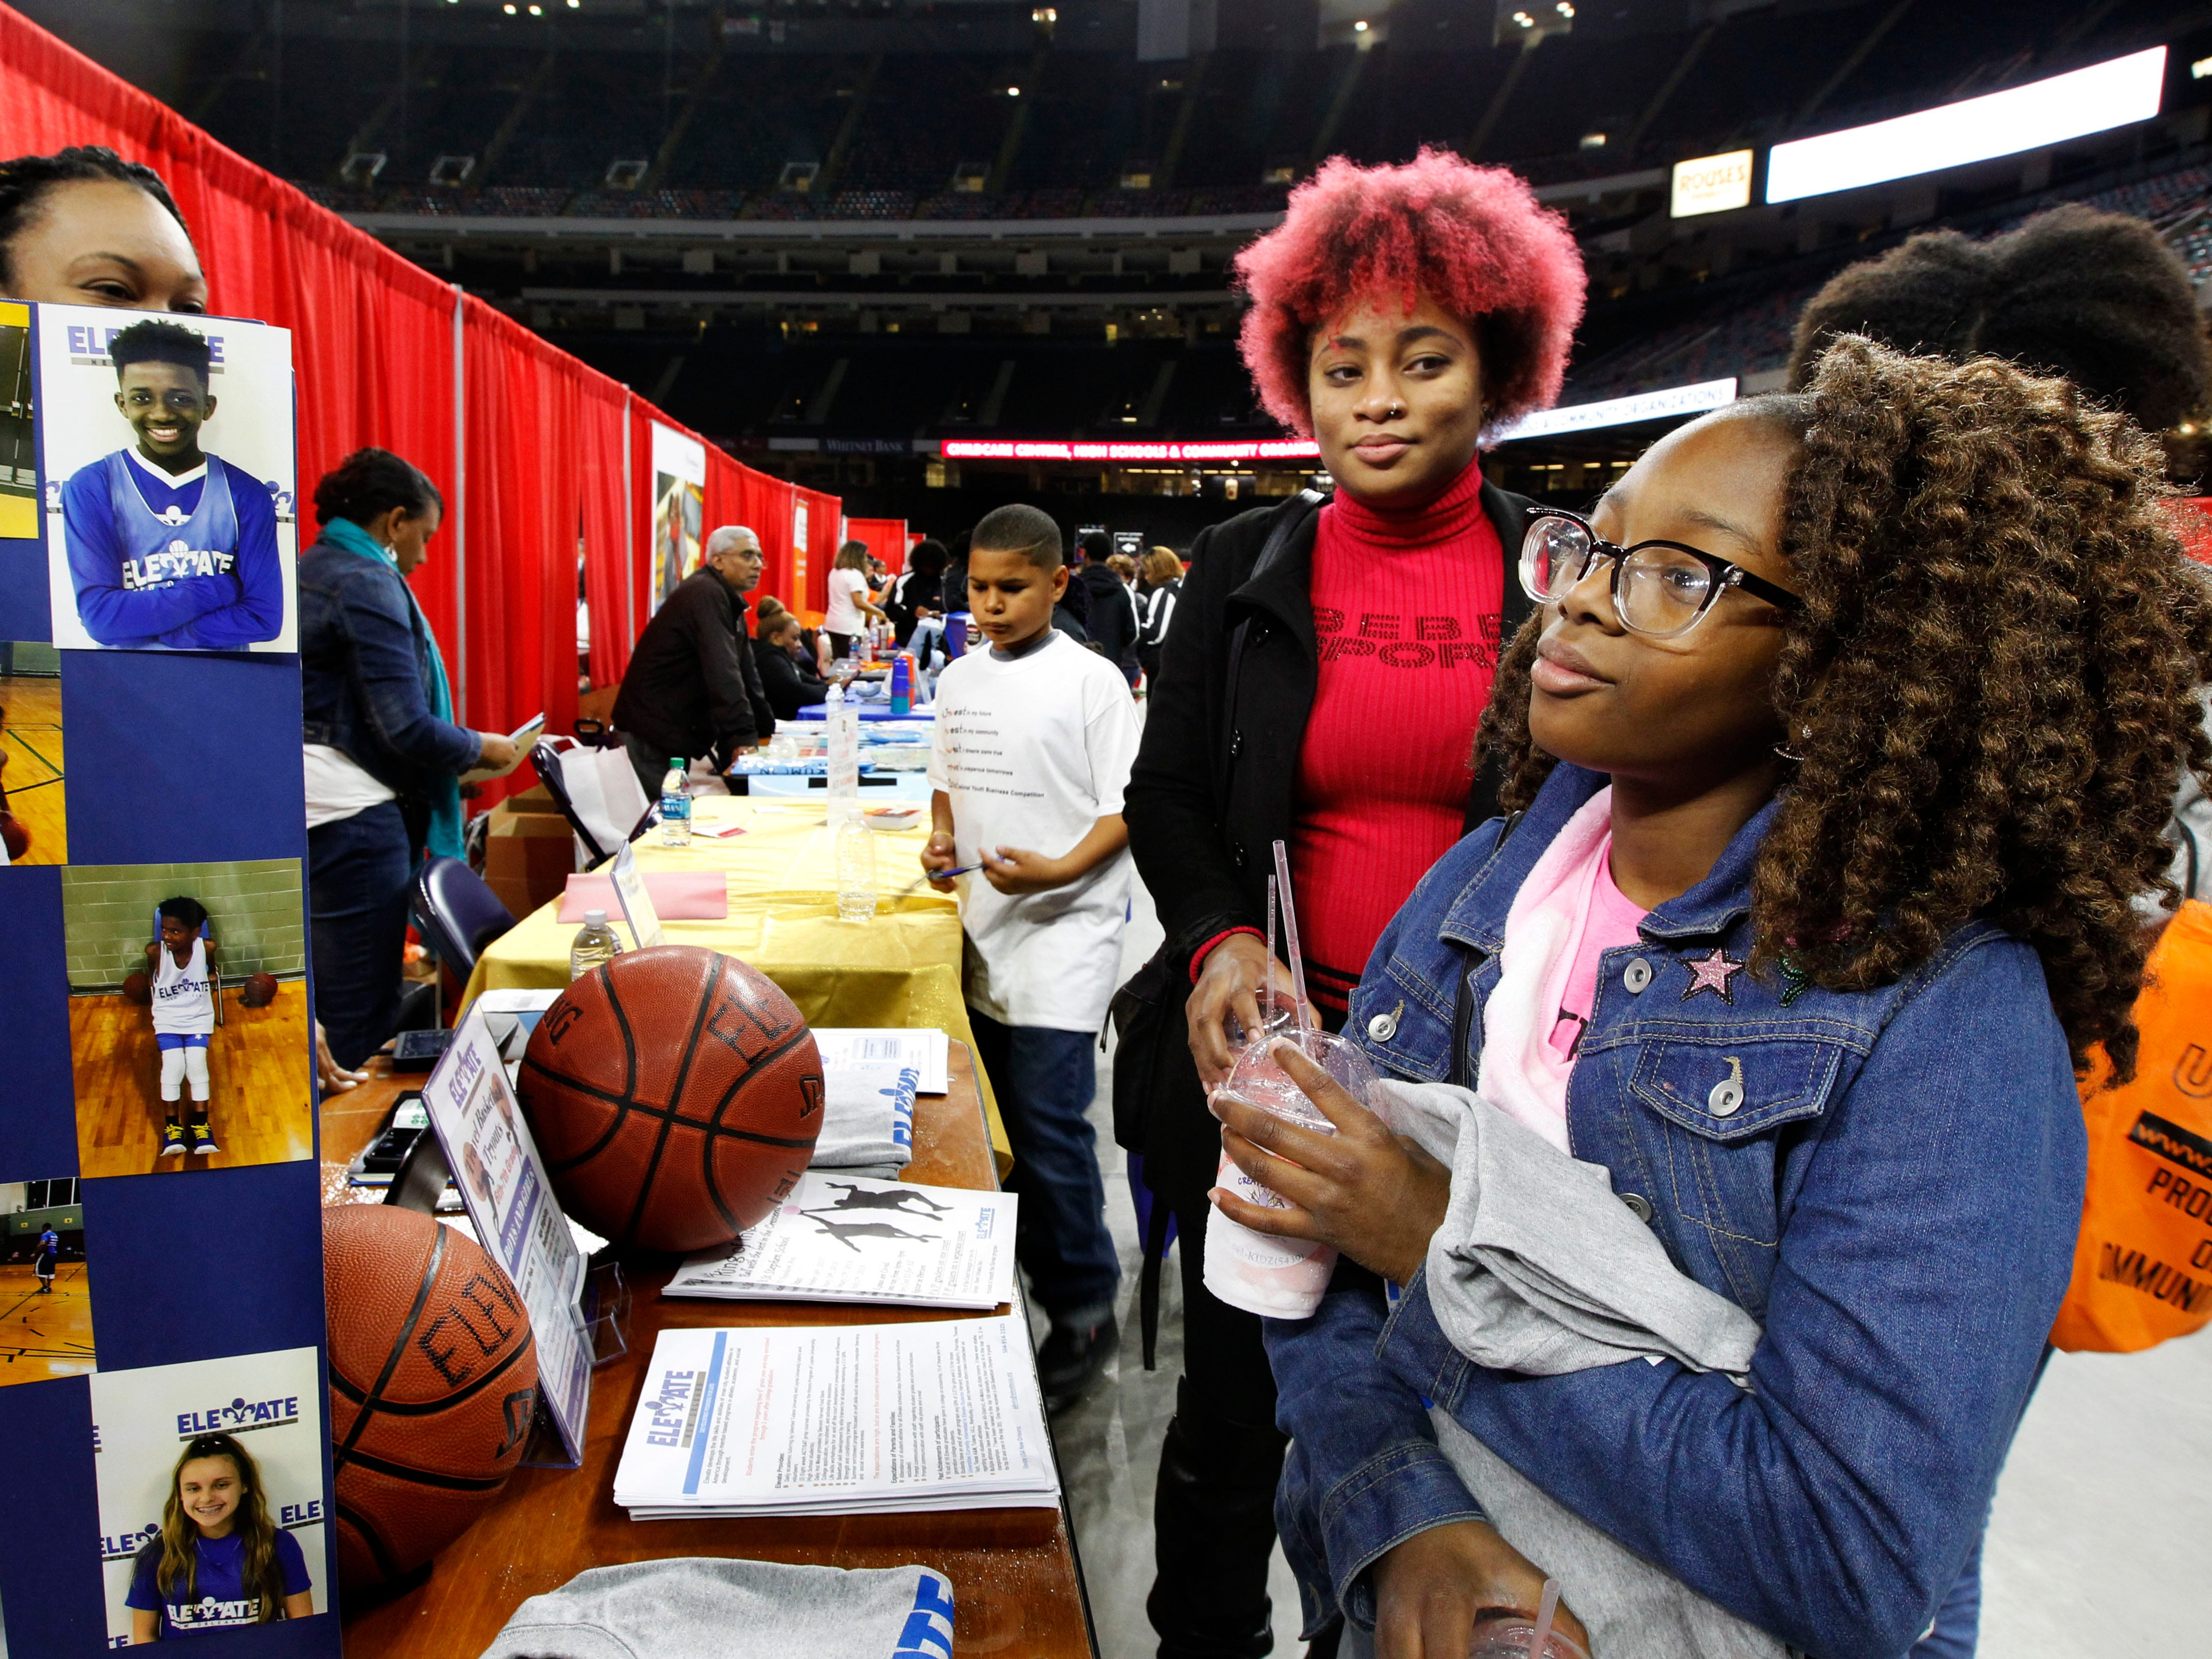 Rhonjae Pomfrey (right), 11, looks over literature at the Elevate table, an after school program, with her mother Rhakeisha Wyre at the Urban League of Schools Expo 2018, at Mercedes-Benz Superdome in New Orleans.